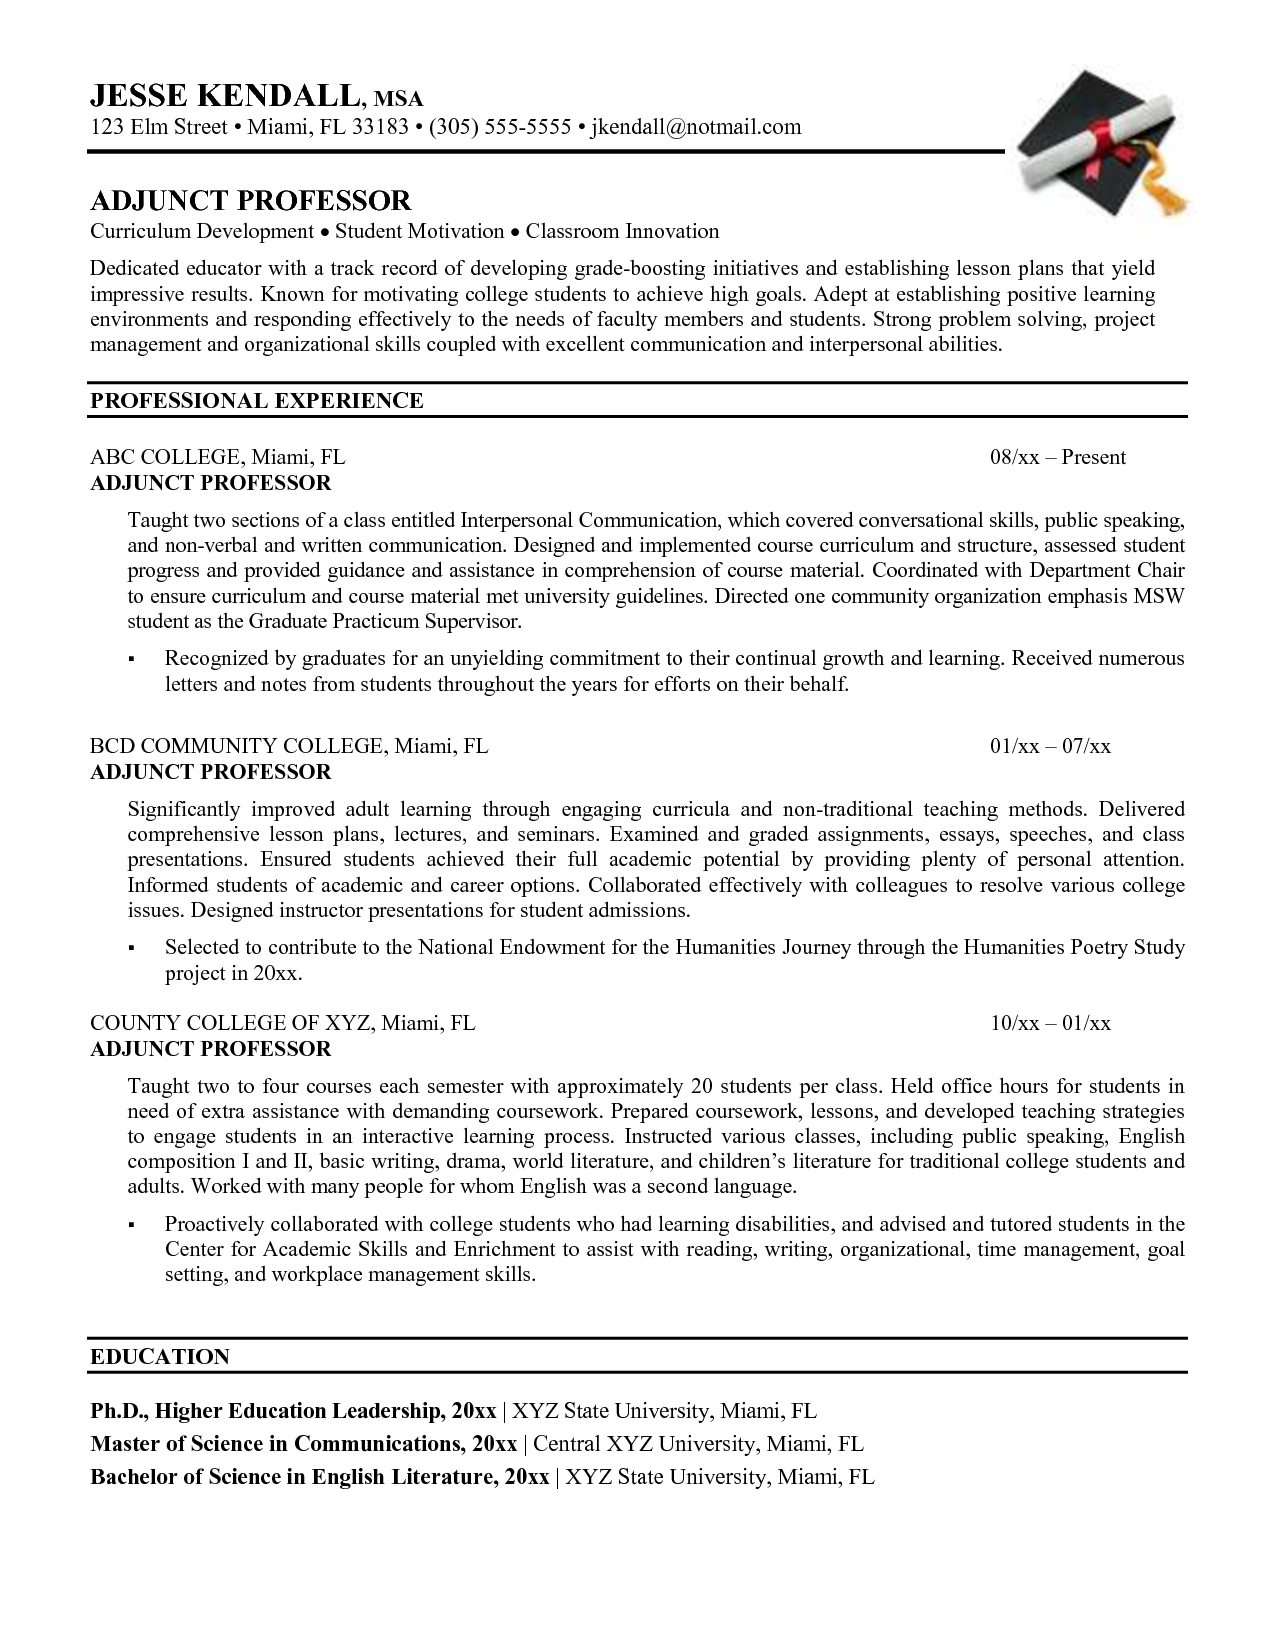 [ Curriculum Vitae Template Education Queensland Assistant Professor Resume  University ]   Best Free Home Design Idea U0026 Inspiration